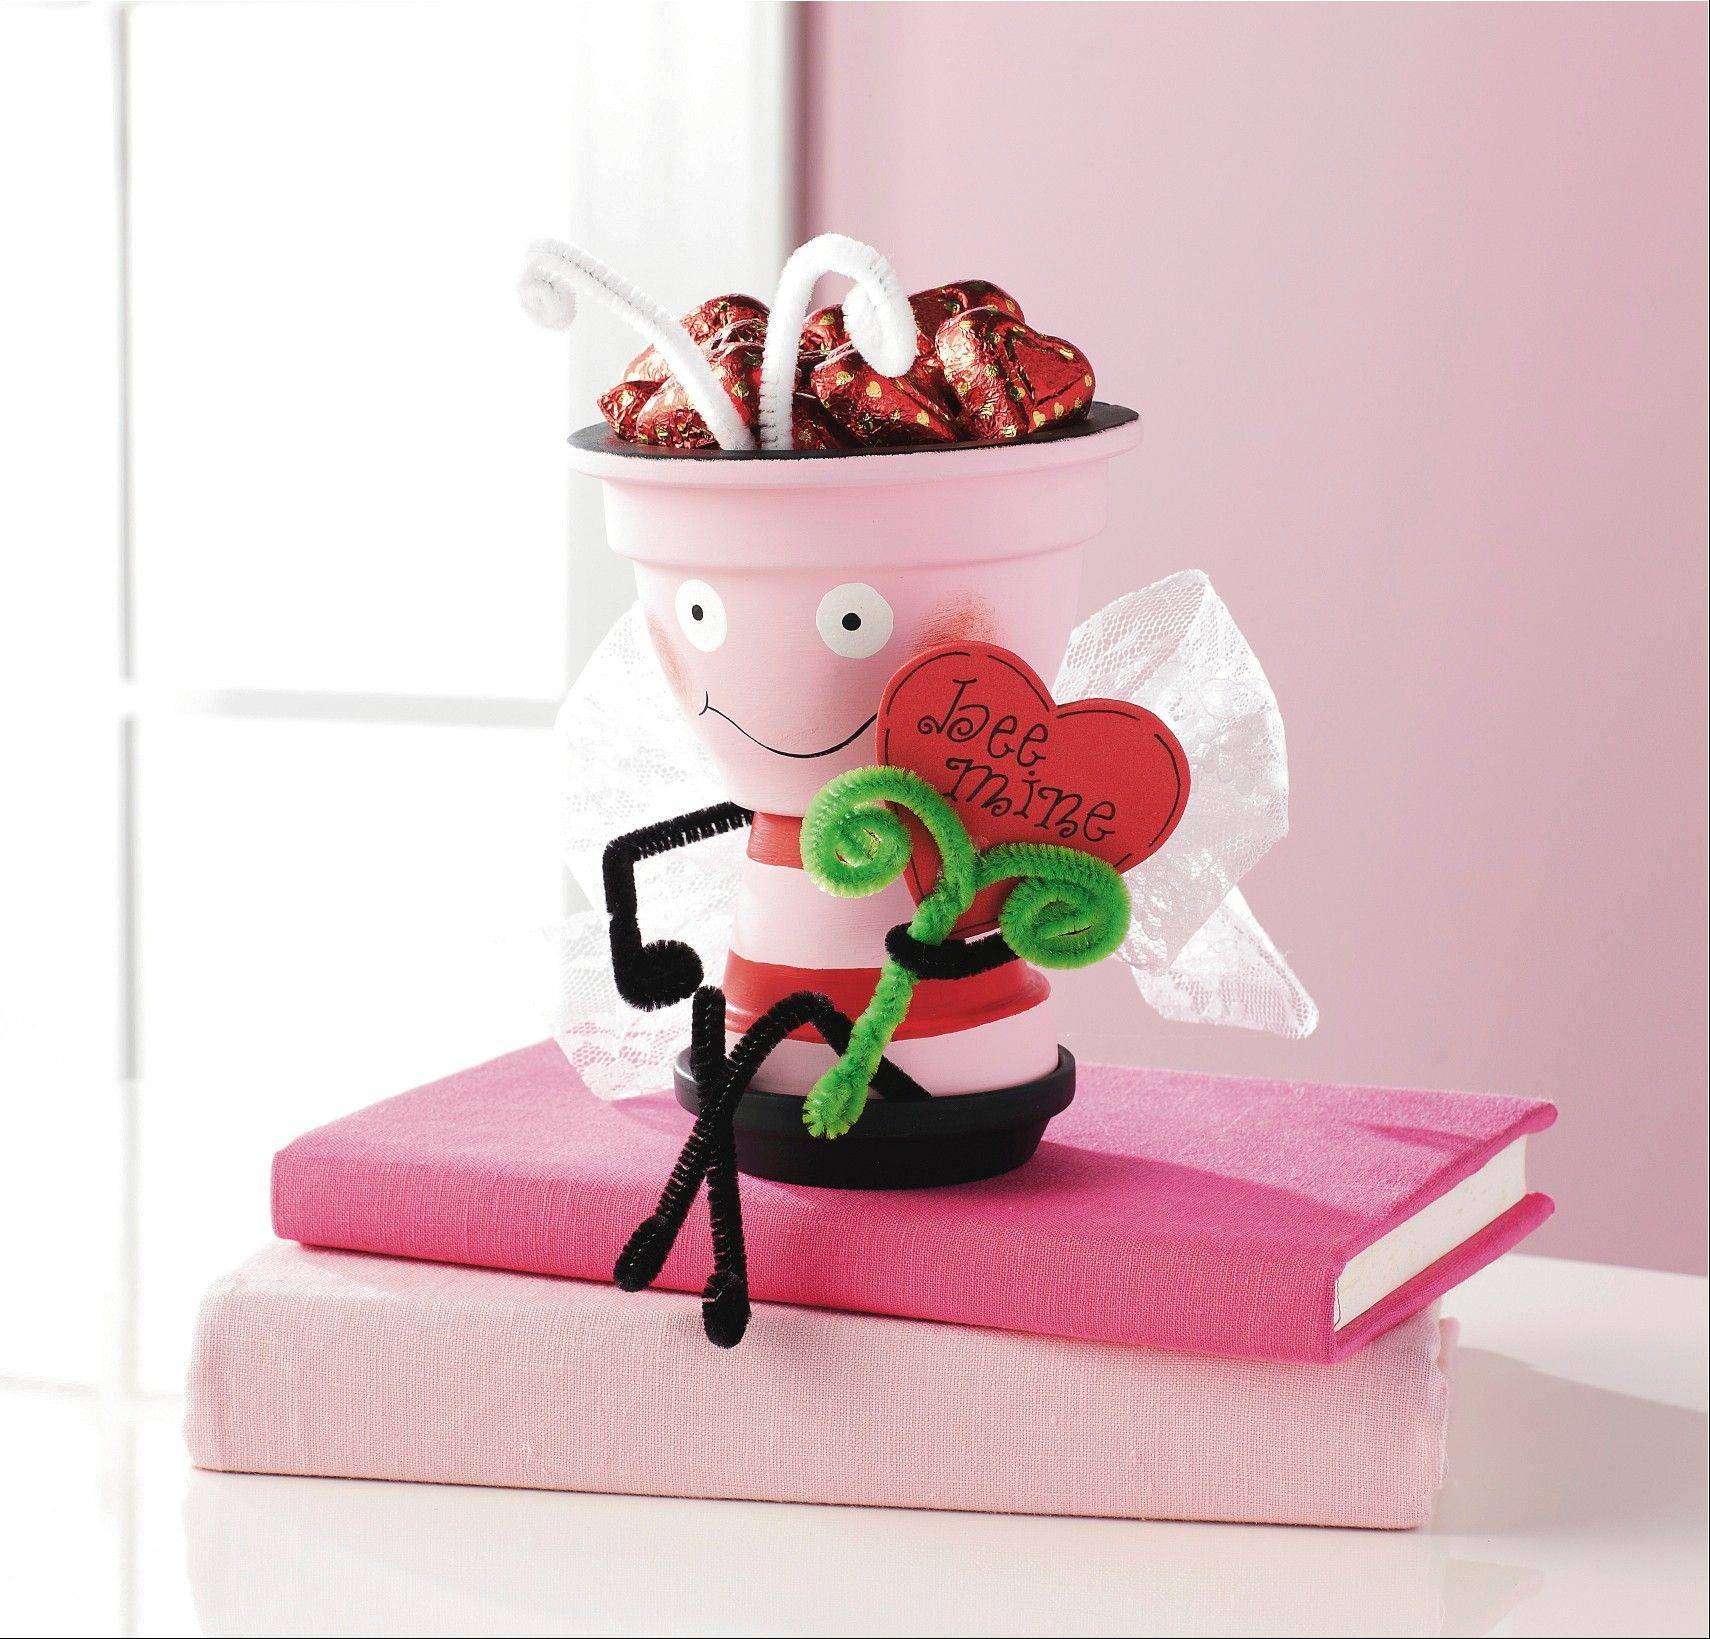 A Clay Pot Valentine Love Bee, sold at Michaels, can be filled with whatever candy your Valentine adores.